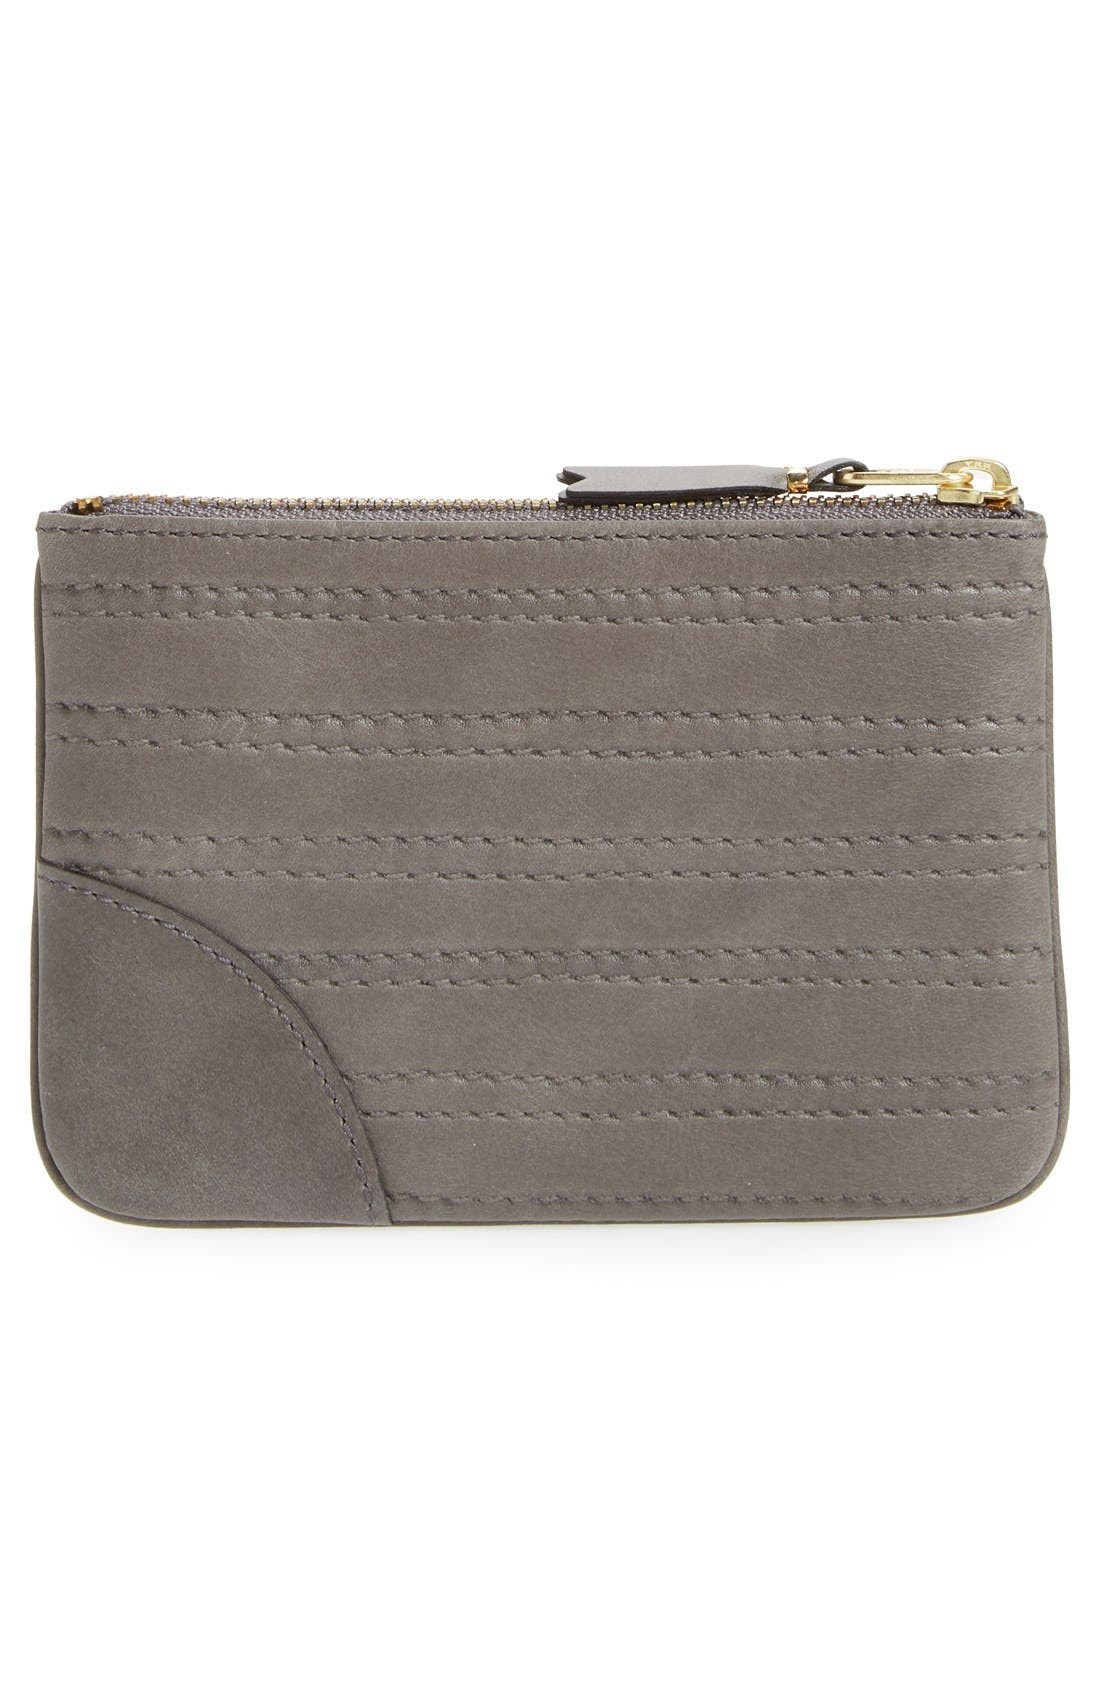 Embossed Leather Top Zip Pouch Wallet,                             Alternate thumbnail 5, color,